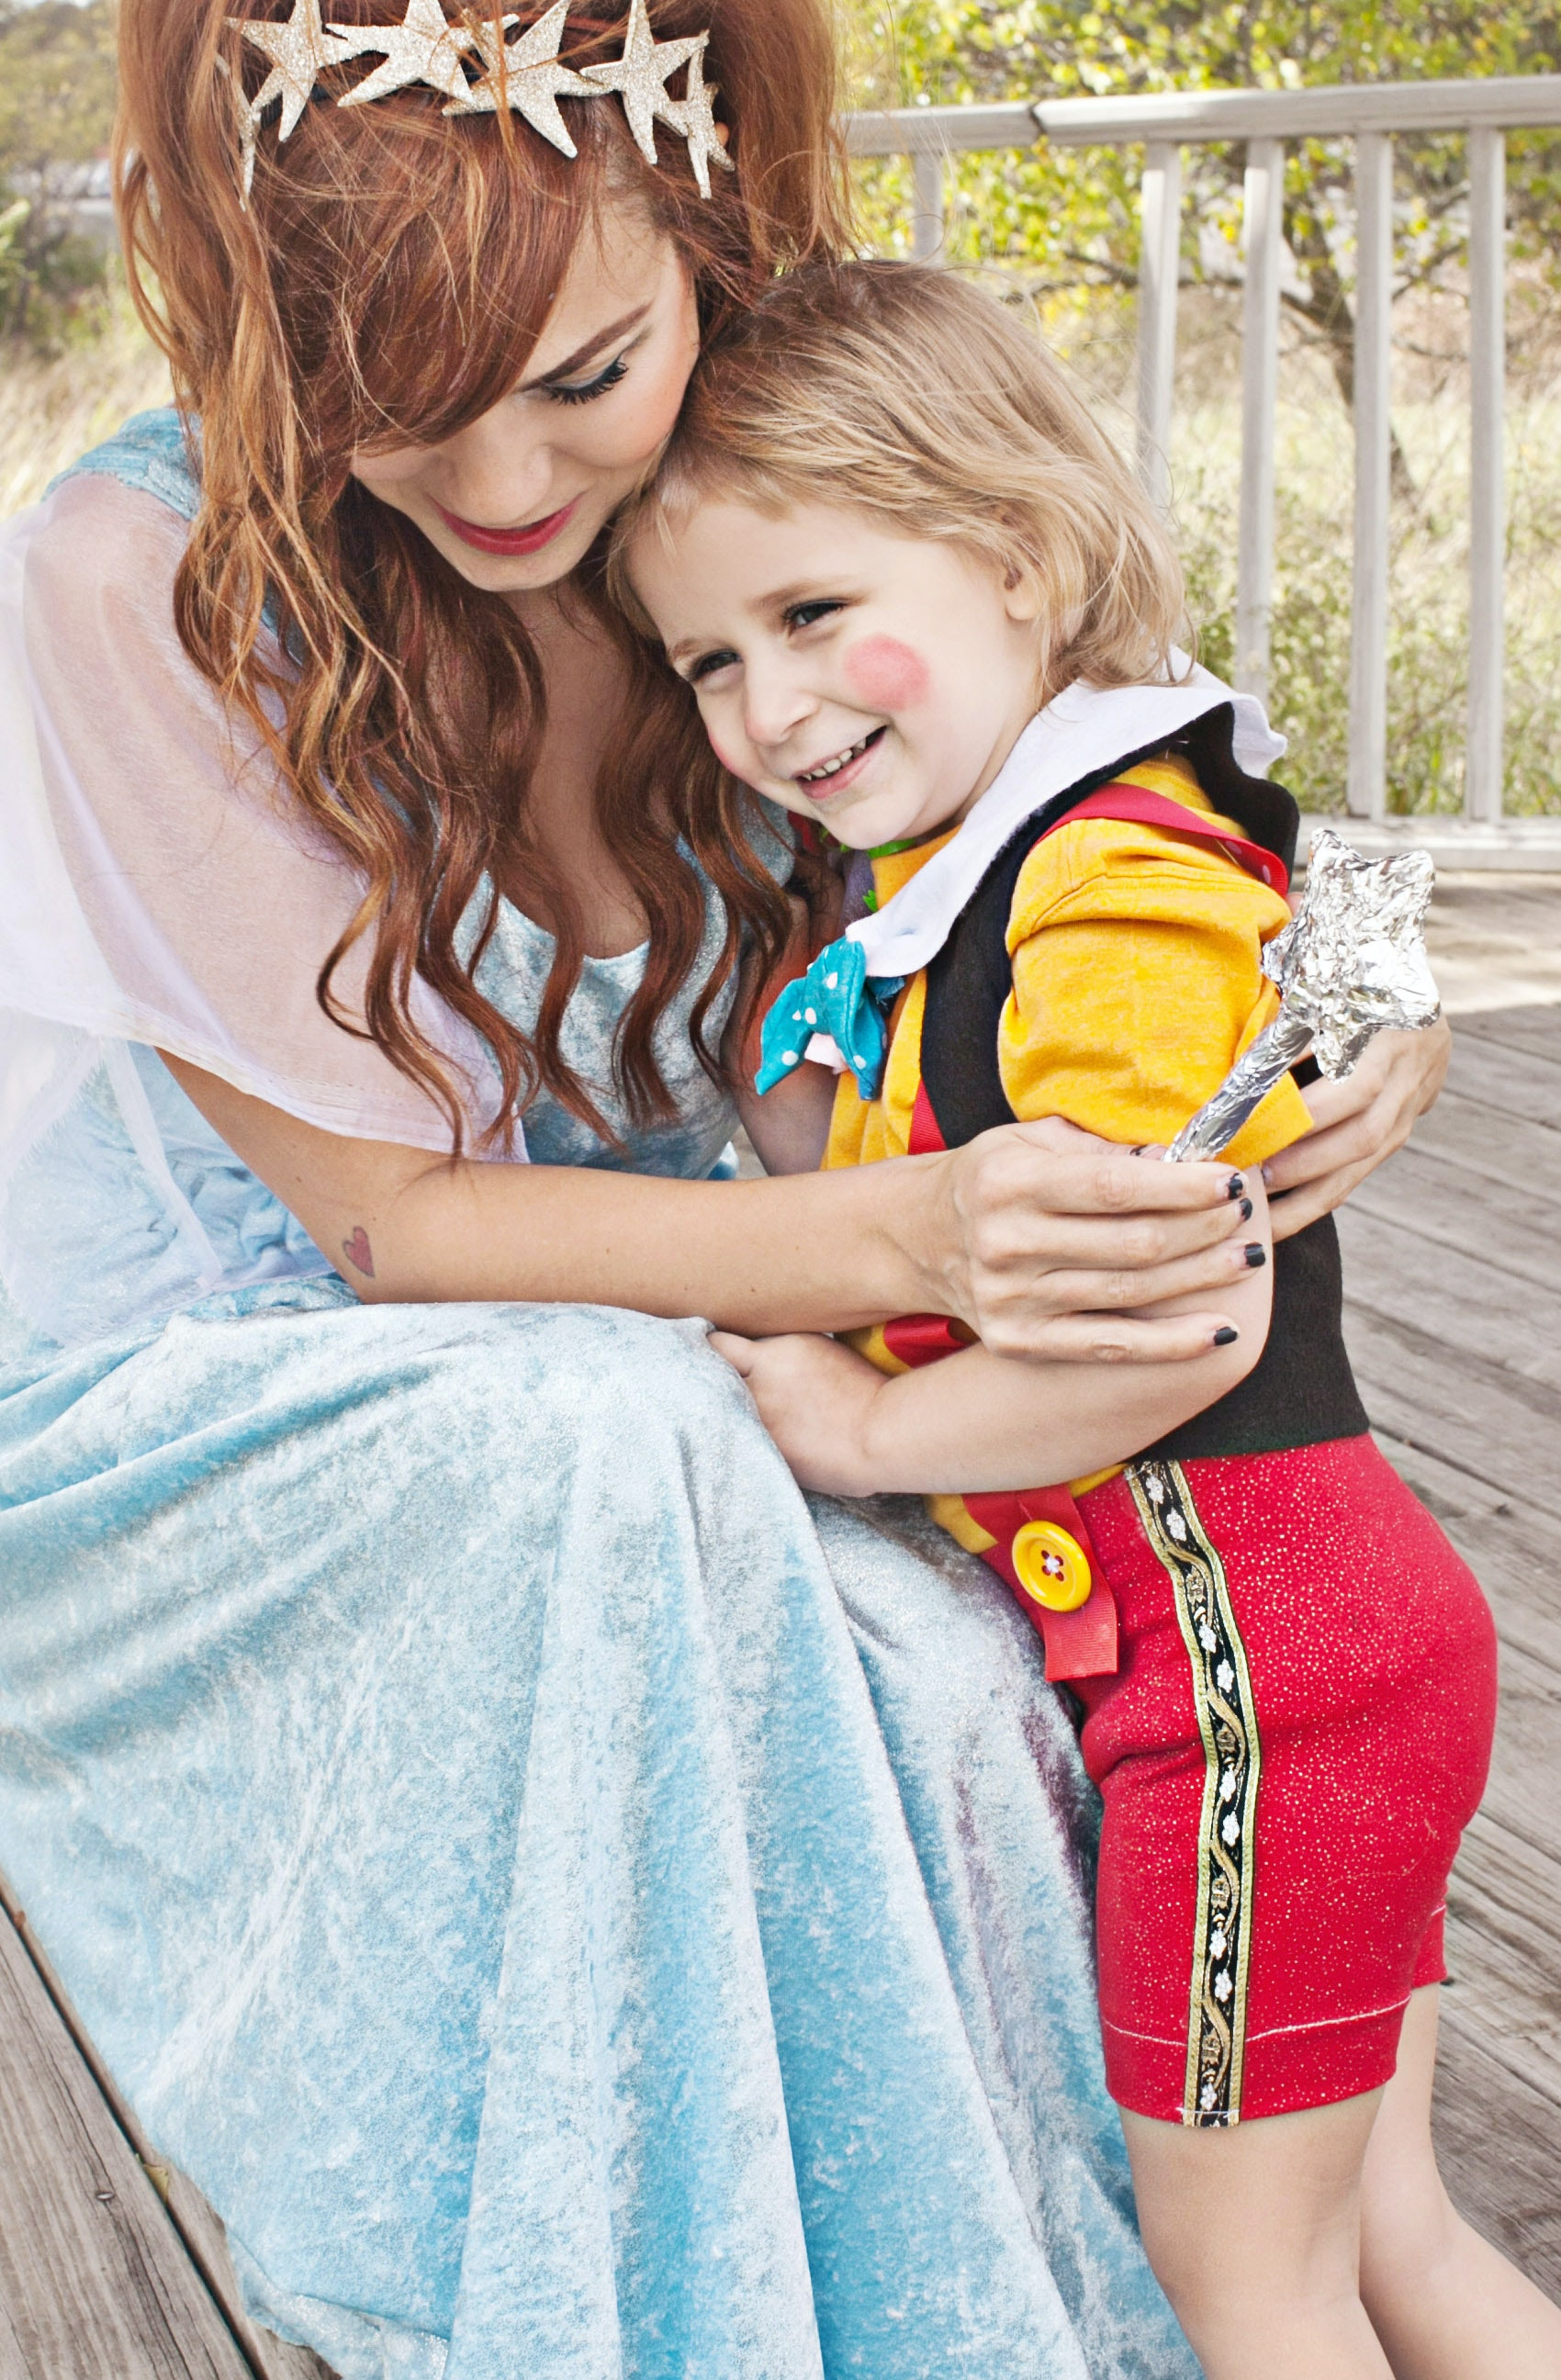 sc 1 st  Romper & 15 Mother-Son Halloween Costume Ideas For The Perfect Pair